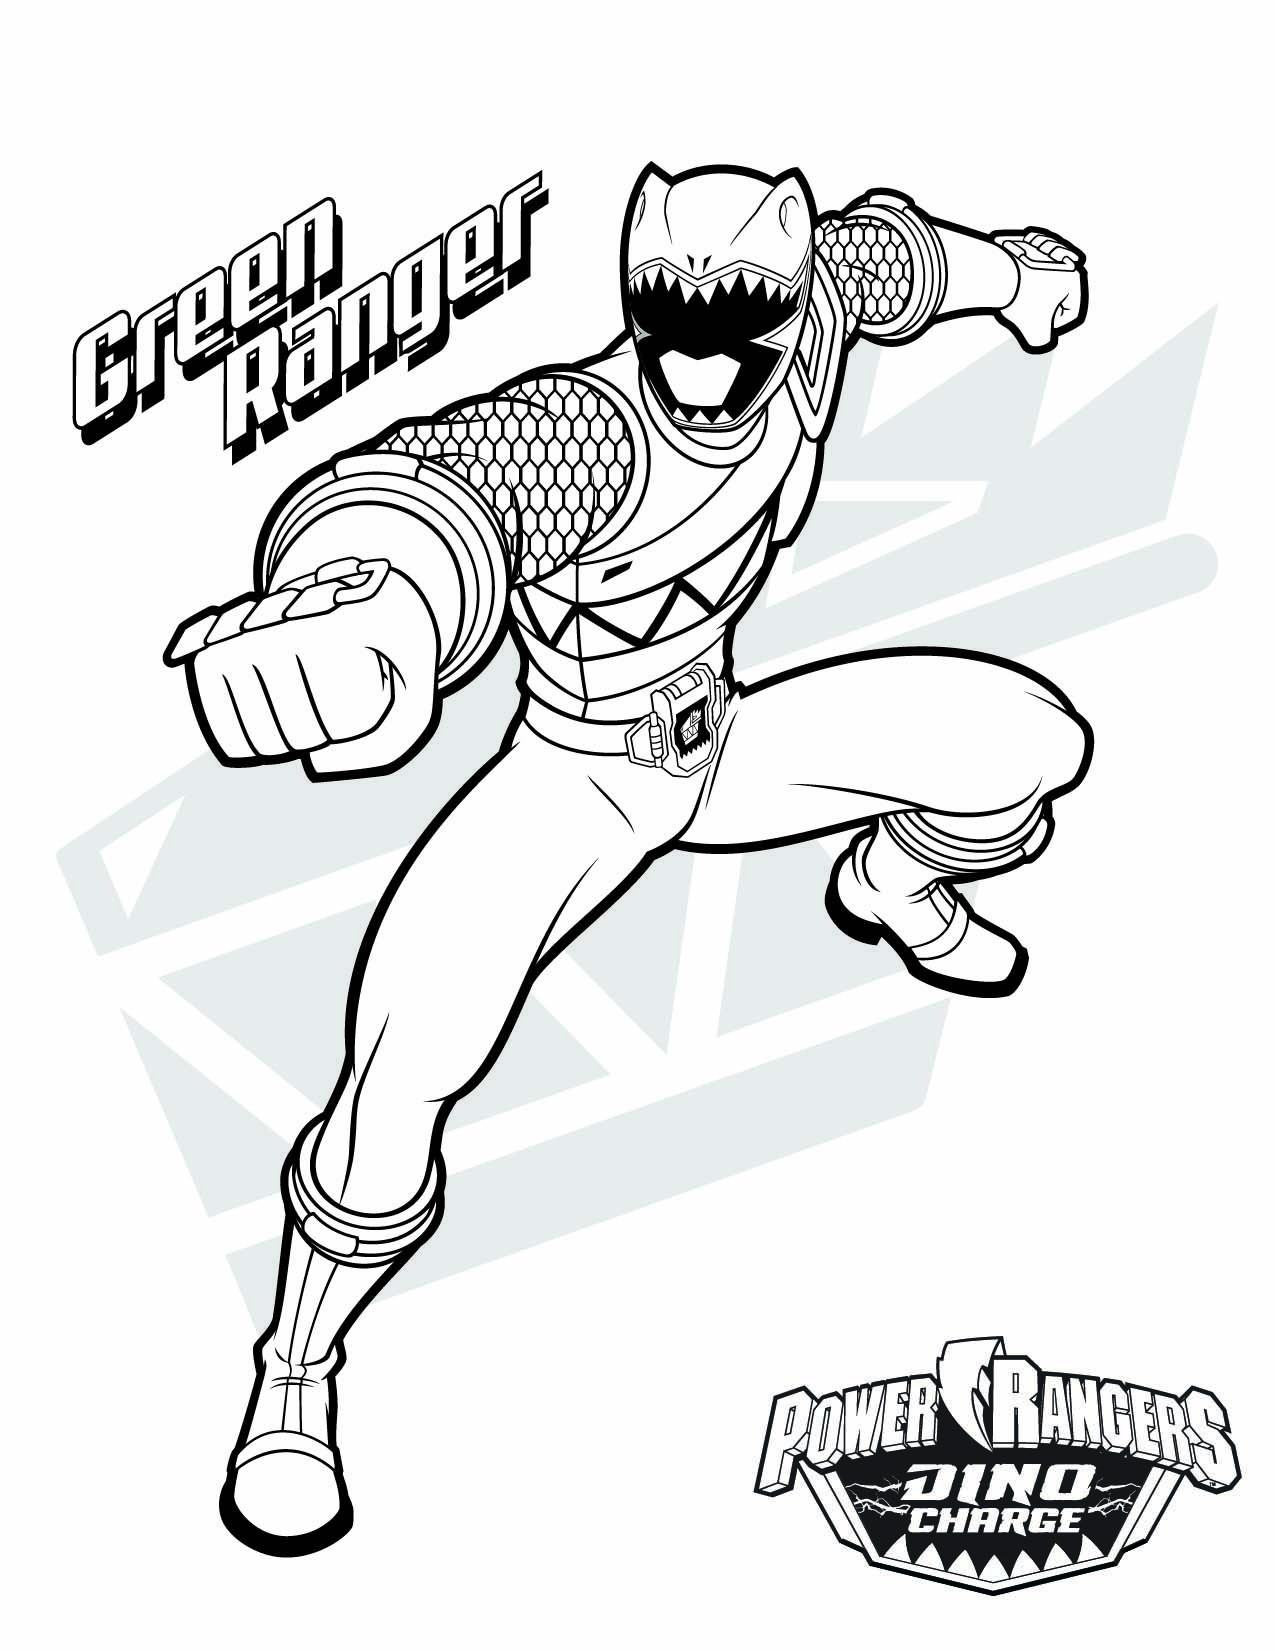 Free online coloring pages of power rangers - Green Ranger Download Them All Http Www Powerrangers Com